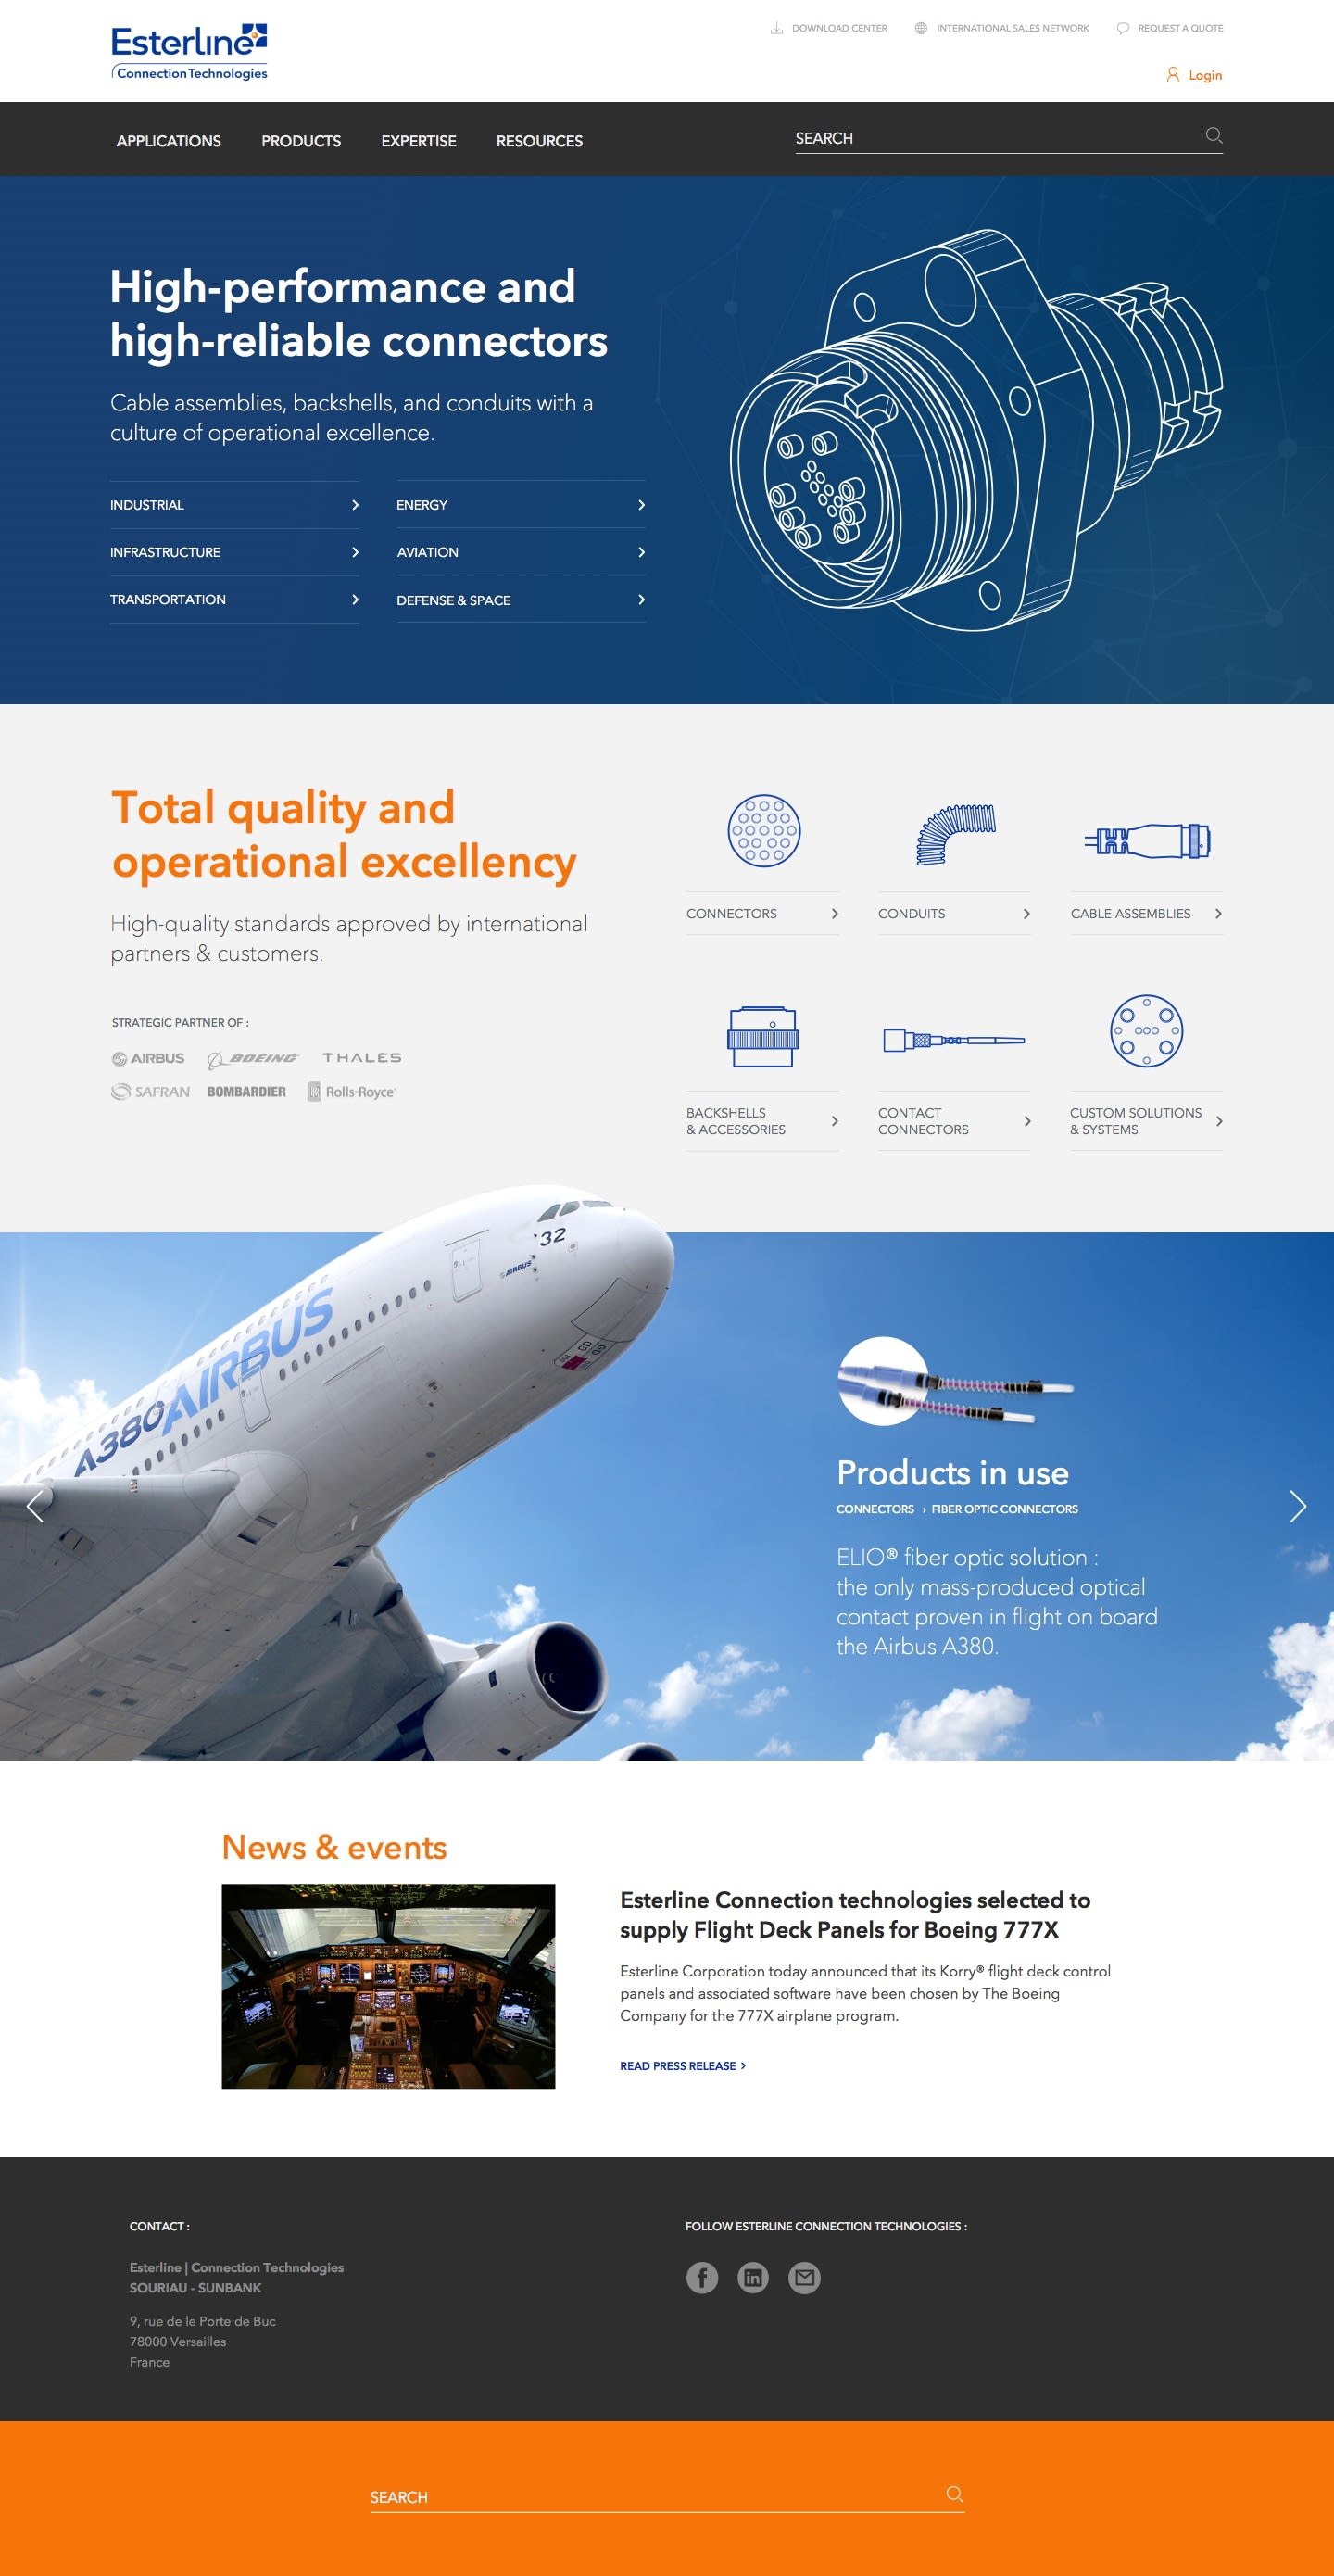 Esterline - Homepage